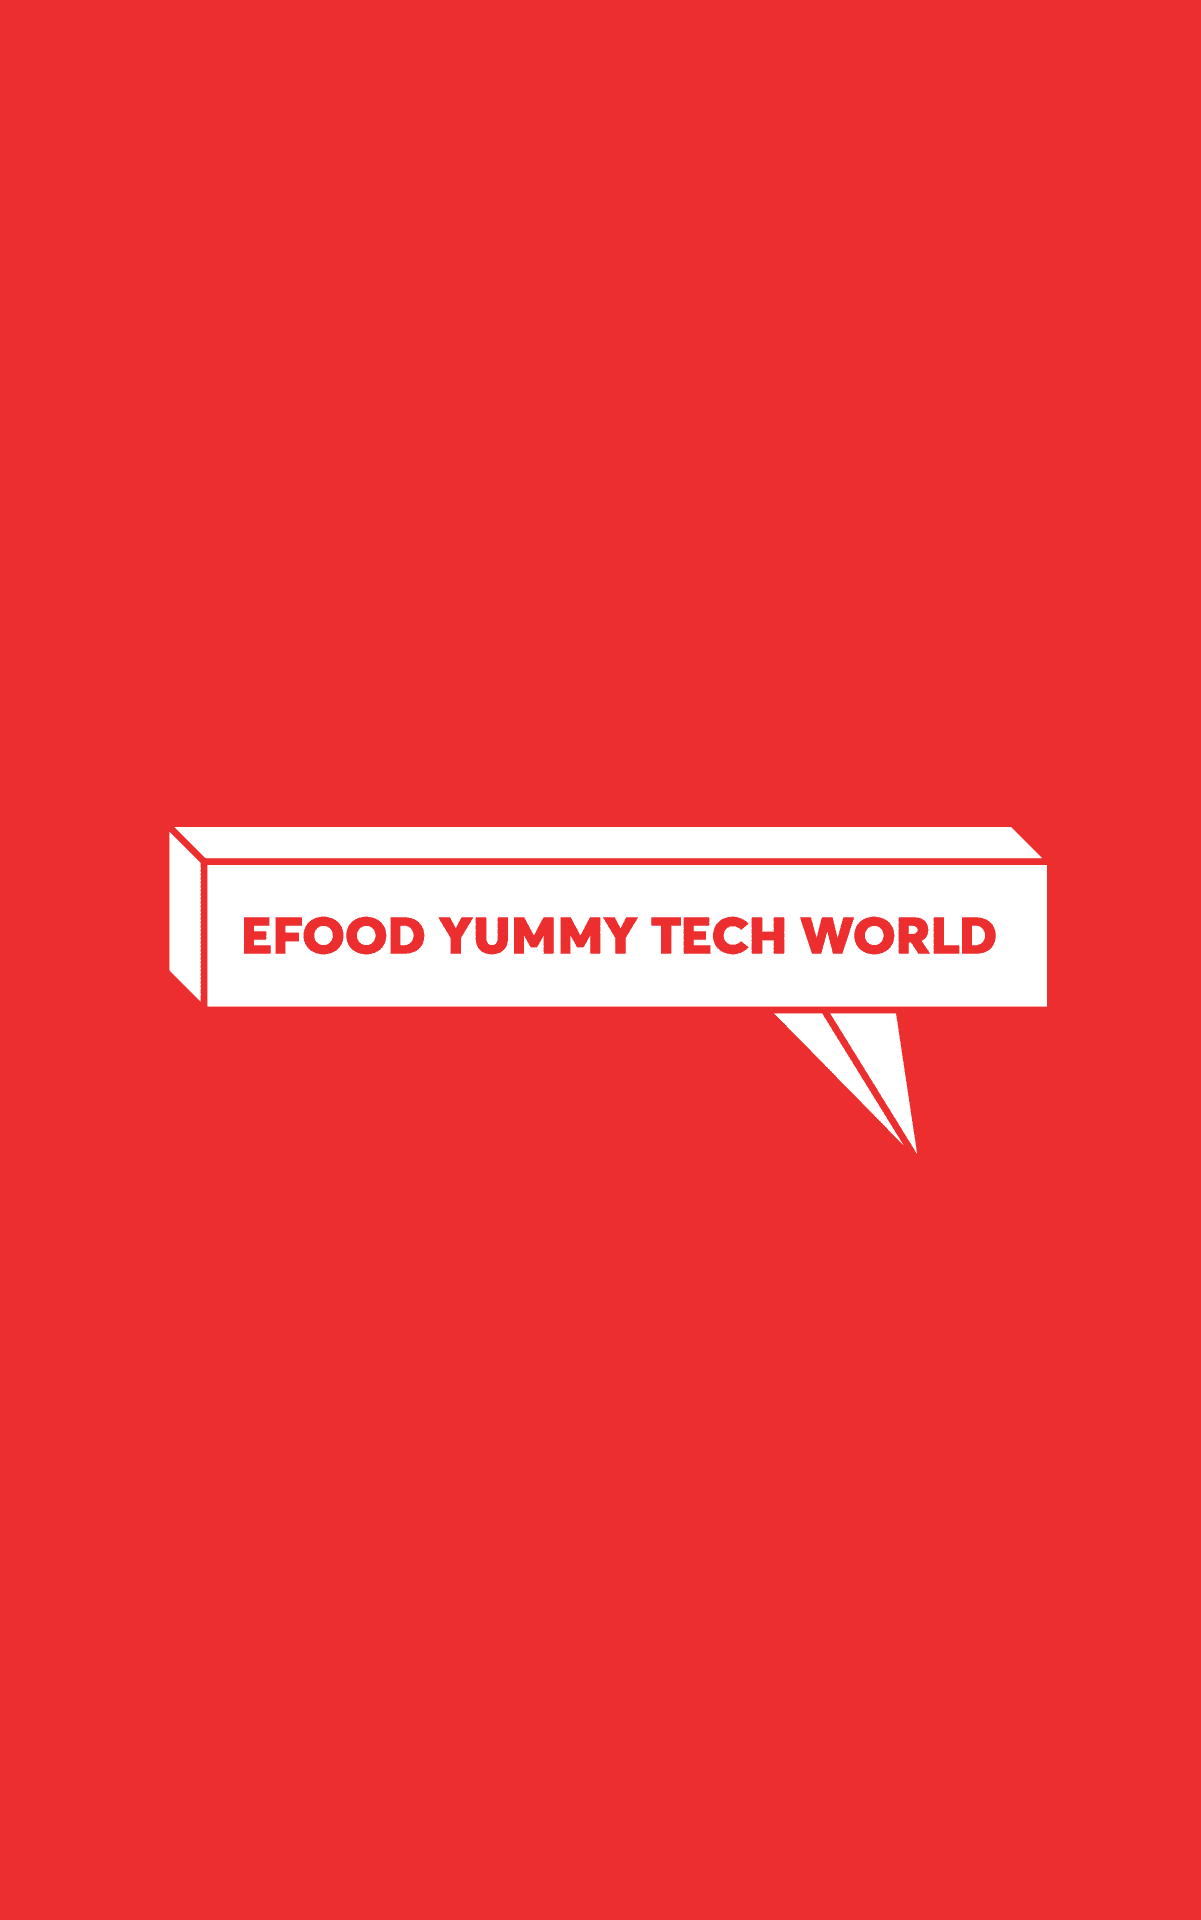 efood world